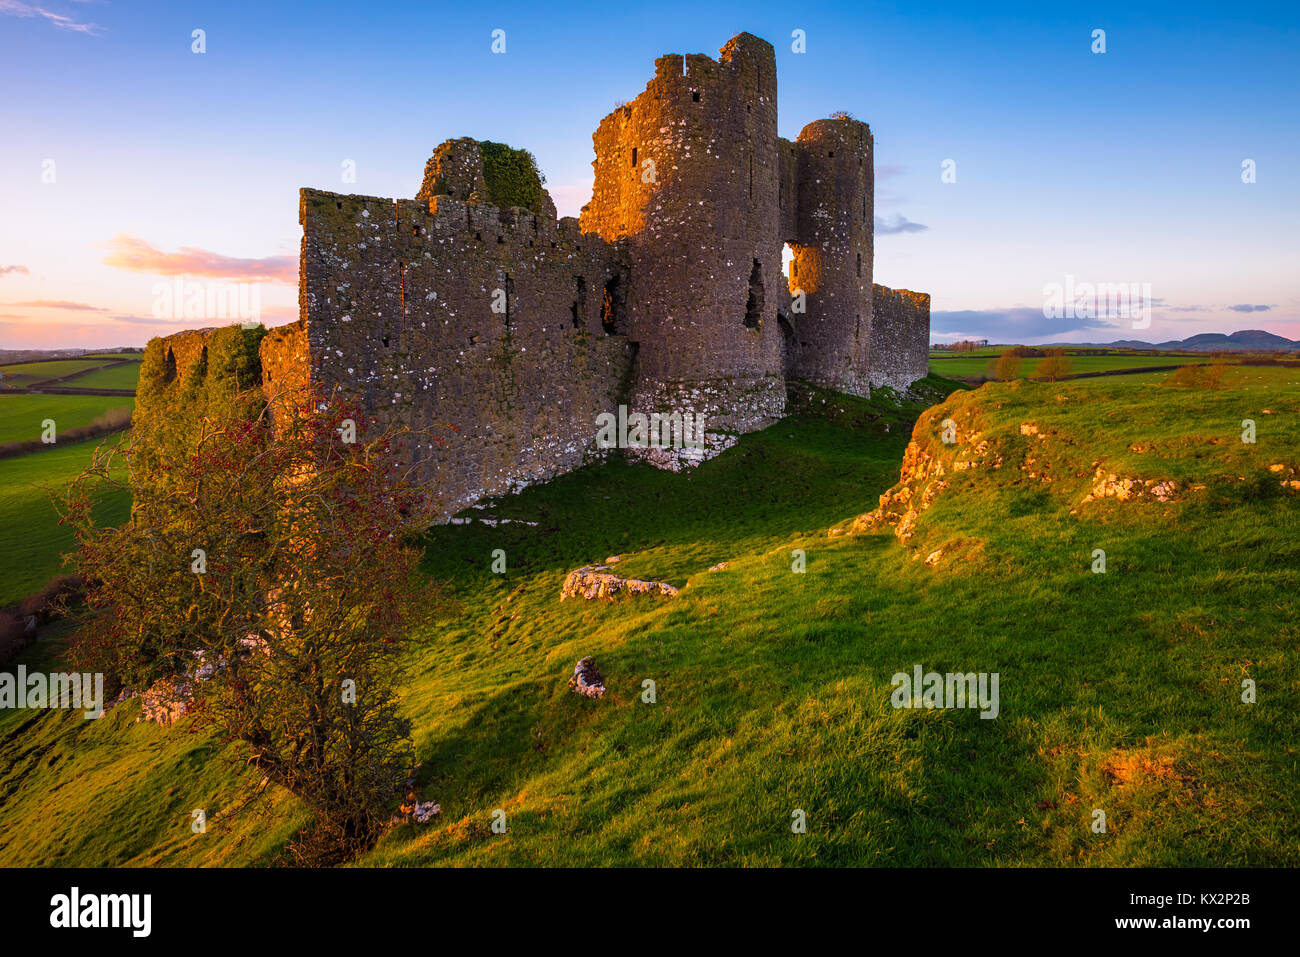 Ruins of Castle Roche, County Louth in Ireland - Stock Image